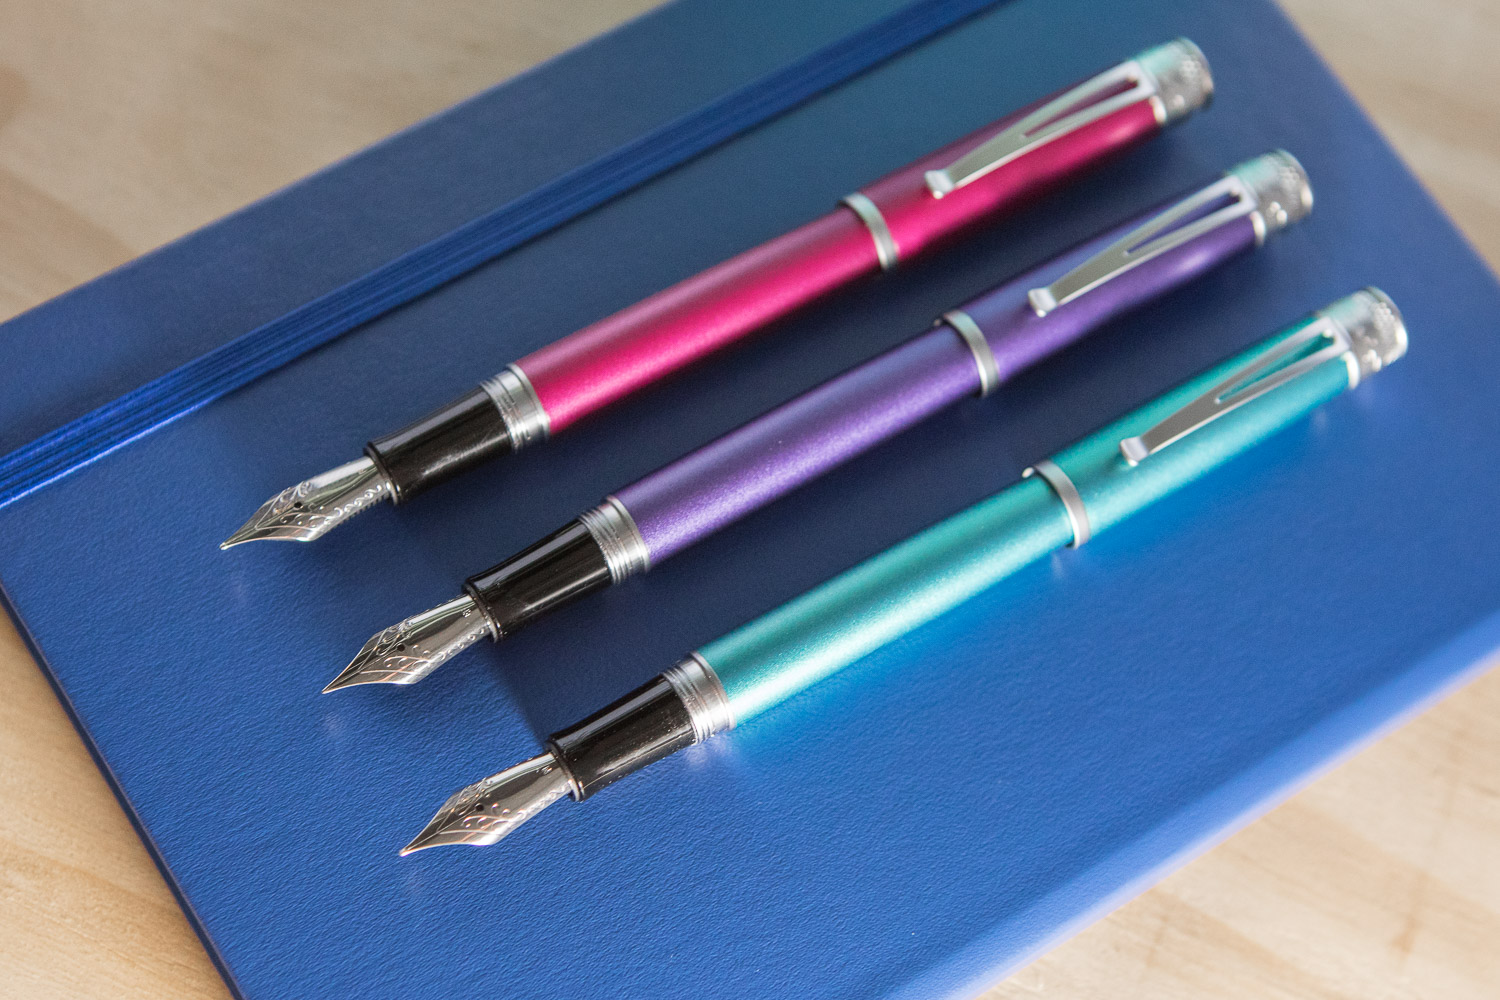 Retro 51 Fountain Pens and Rollerballs.